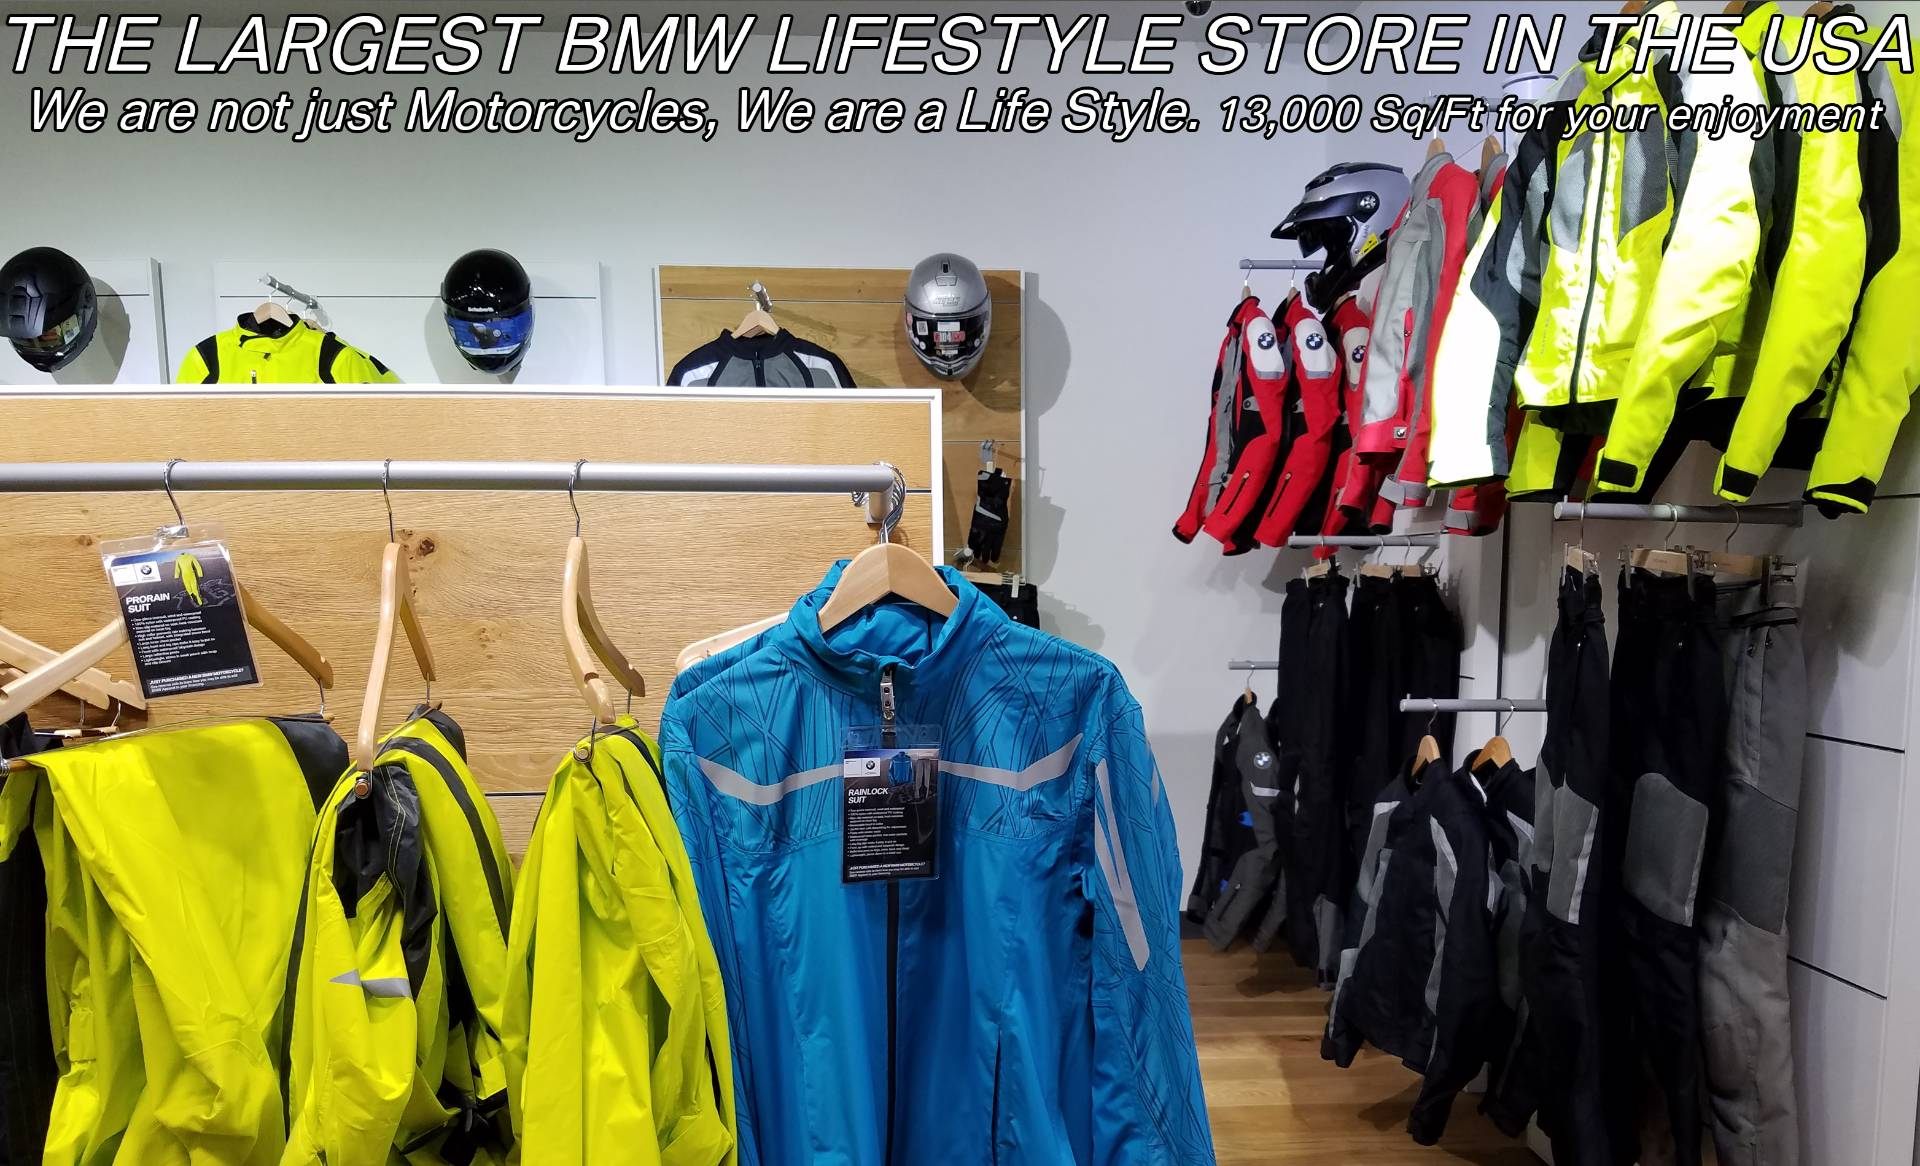 Used 2016 BMW S 1000 XR For Sale, Pre Owned BMW S 1000XR For Sale, Pre-Owned BMW Motorcycle S1000XR, BMW Motorcycle, S 1000 XR, DUAL, BMW - Photo 39